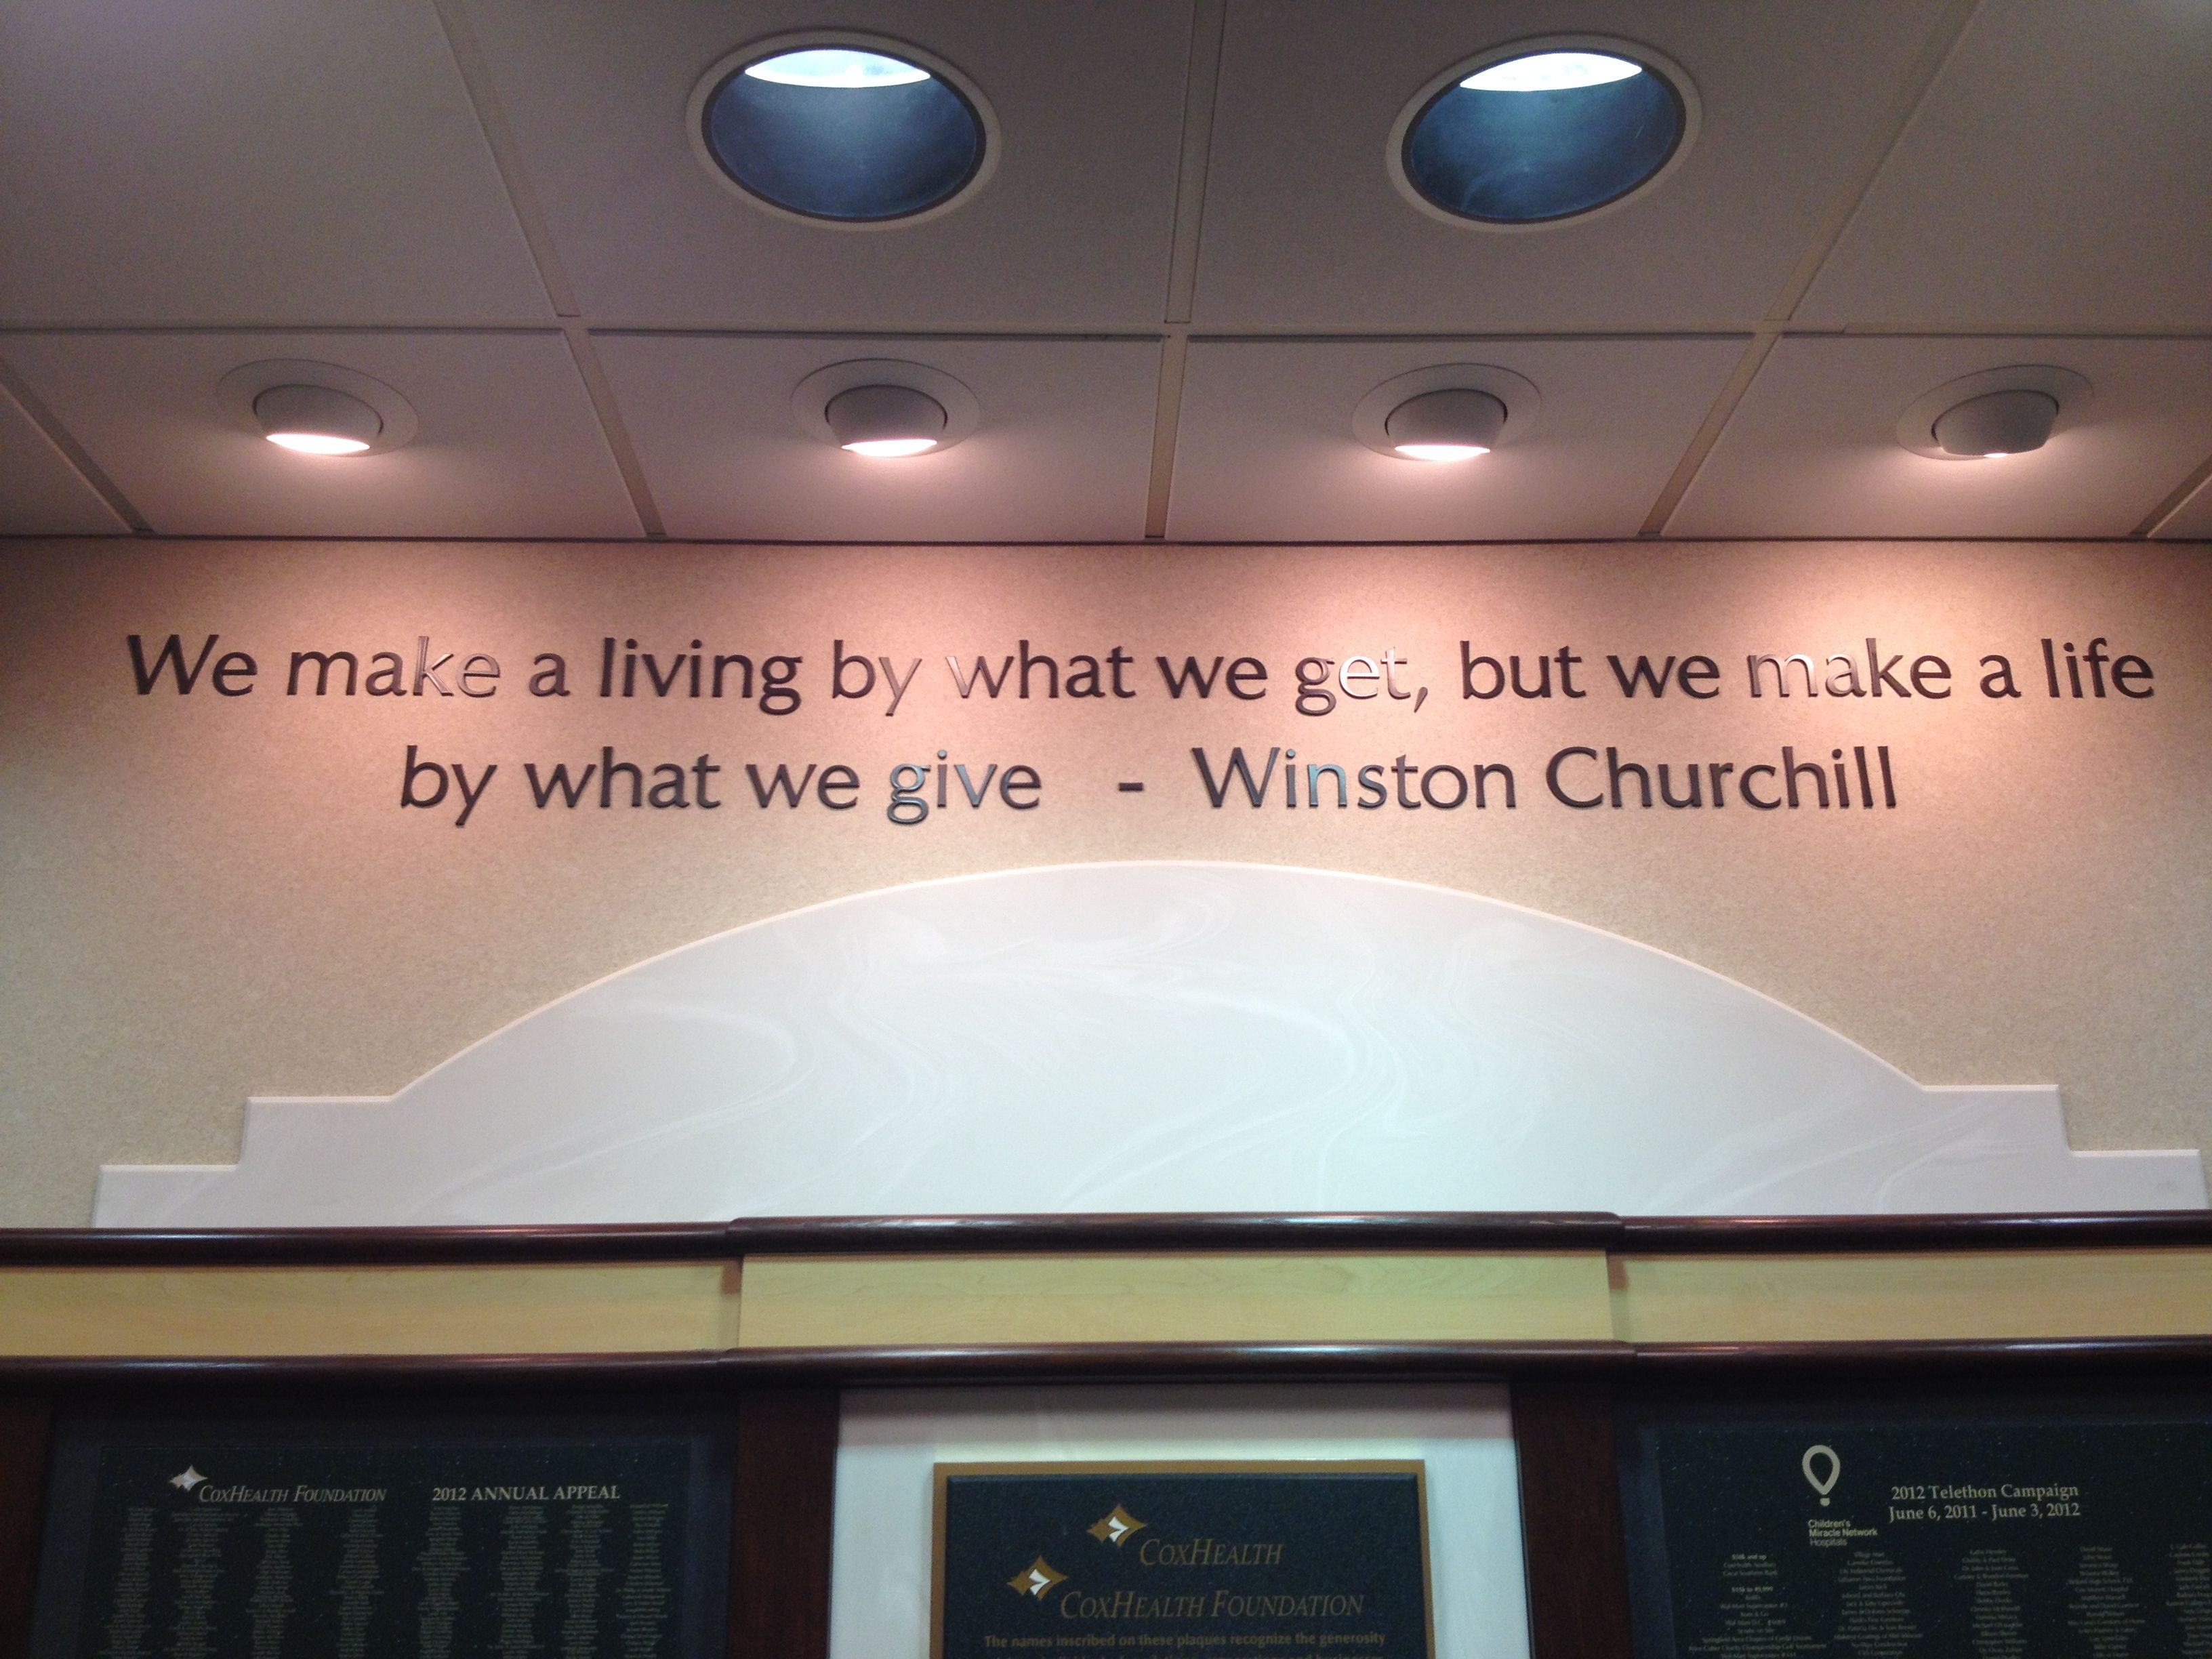 I took this picture at the Cox South hospital in Springfield, Missouri. Love Winston.